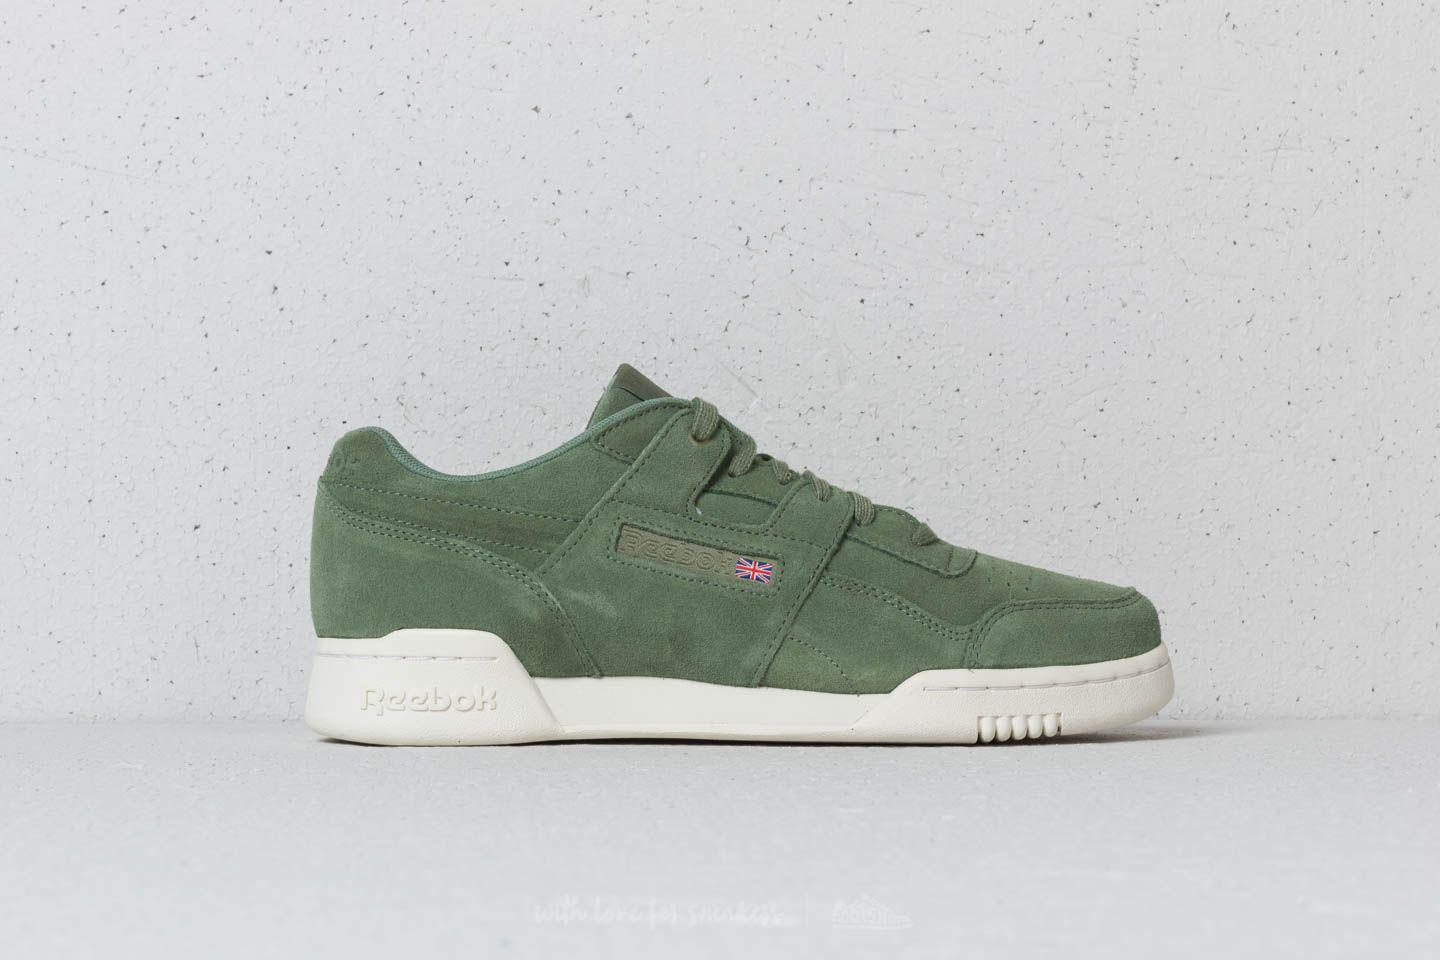 Reebok - Green Reebok X Montana Cans Workout Plus Manila  Chalk for Men -  Lyst. View fullscreen e0e5275b1